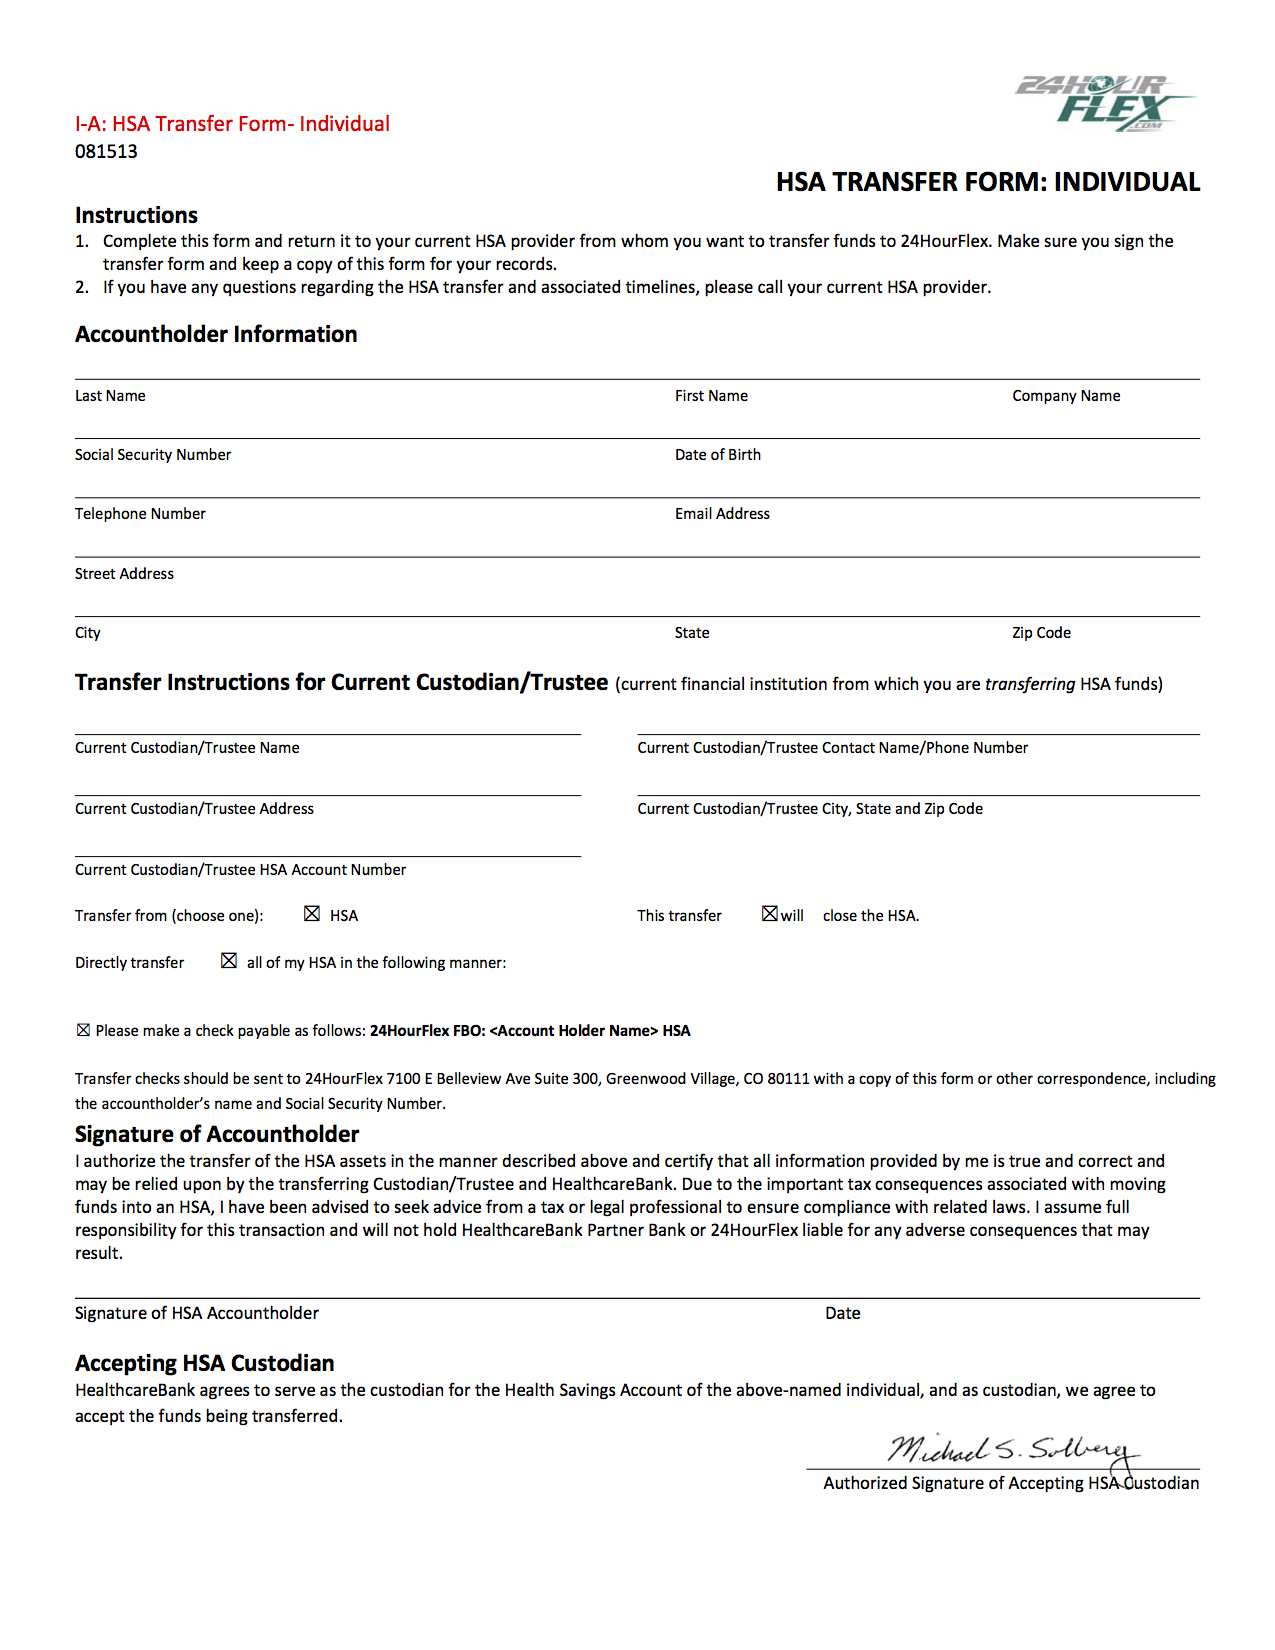 HSA Transfer Form-Individual_UNIVERSAL